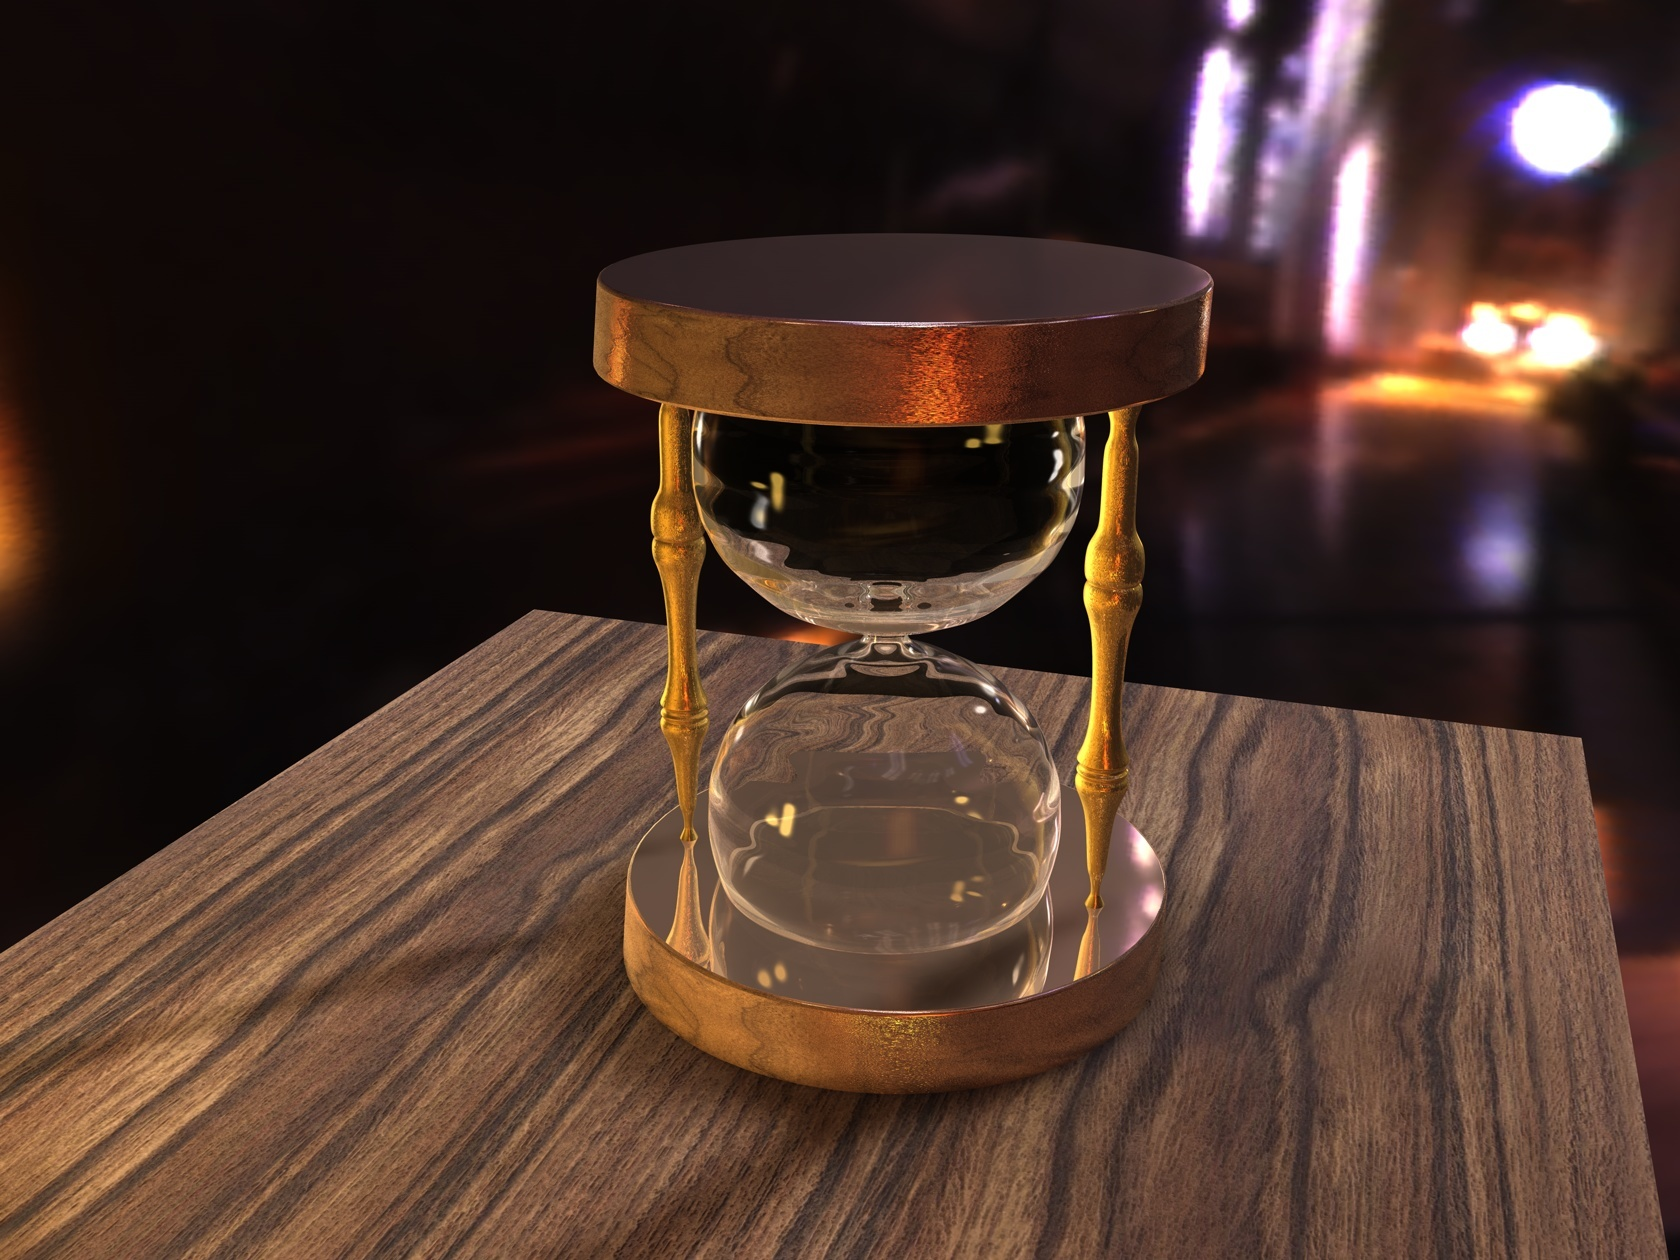 hourglass watches clocks time HD Wallpaper